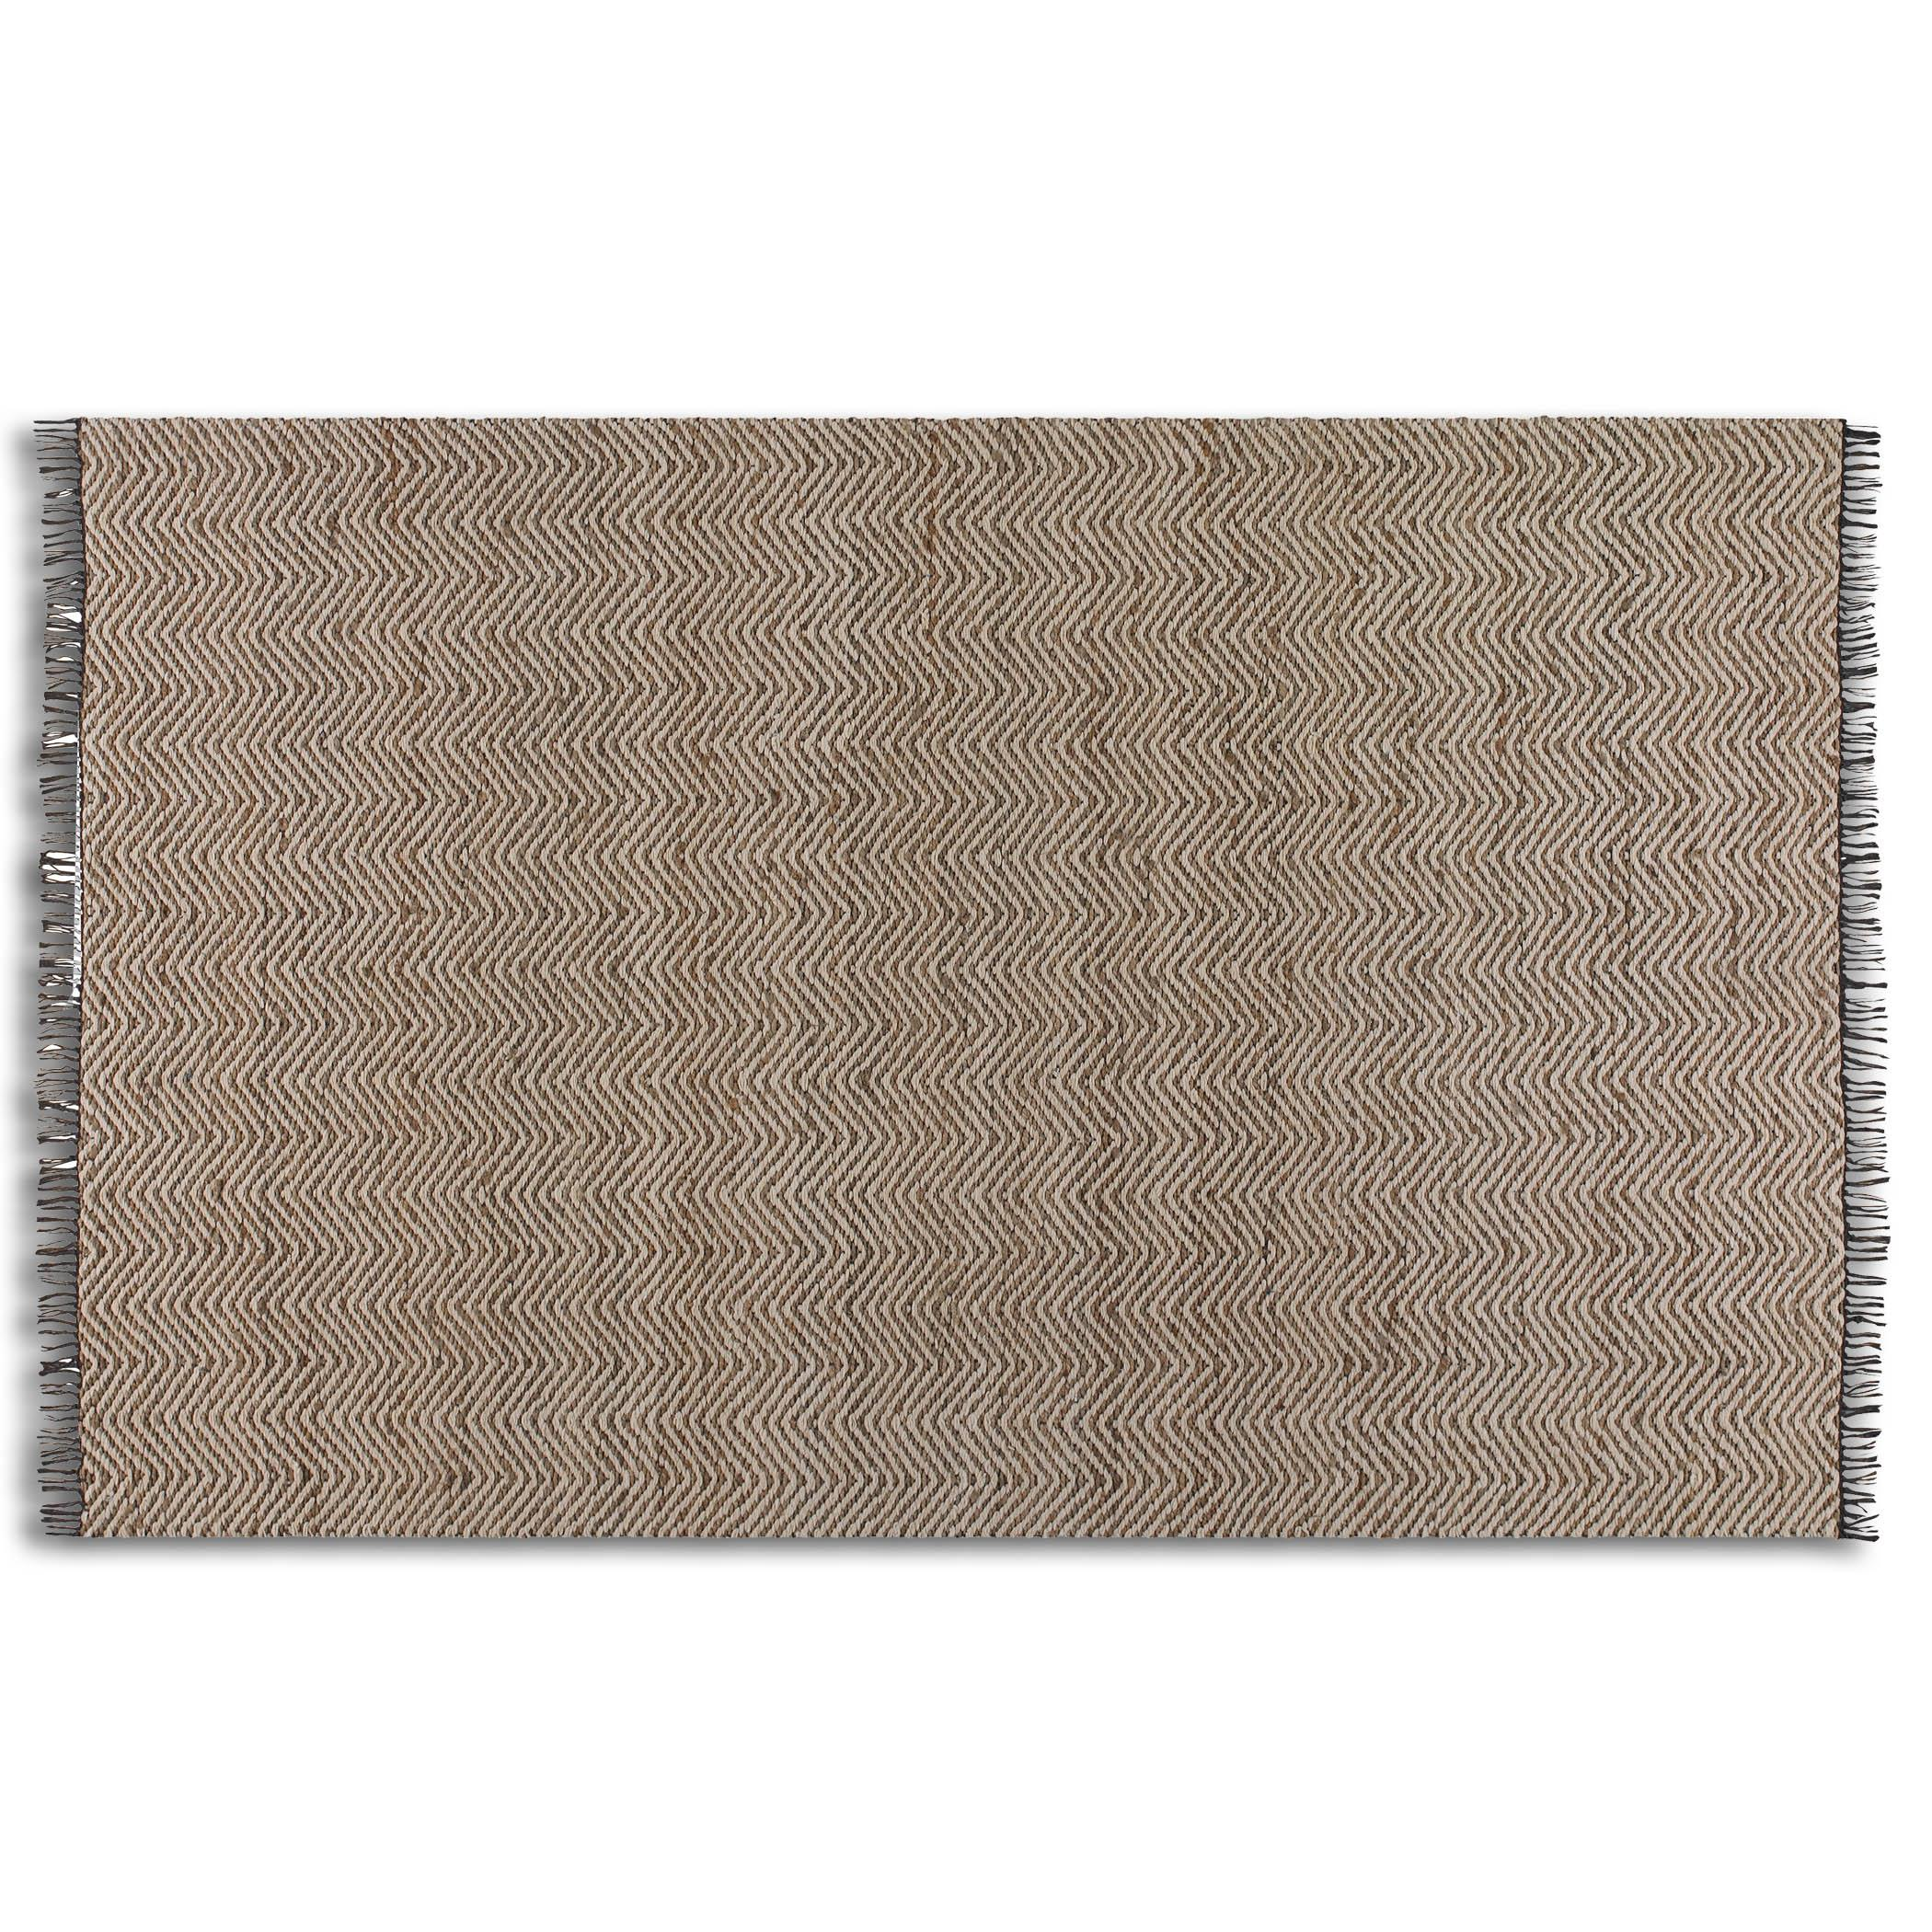 Uttermost Rugs Nalanda 8 X 10 Hand Woven Rug - Item Number: 71047-8